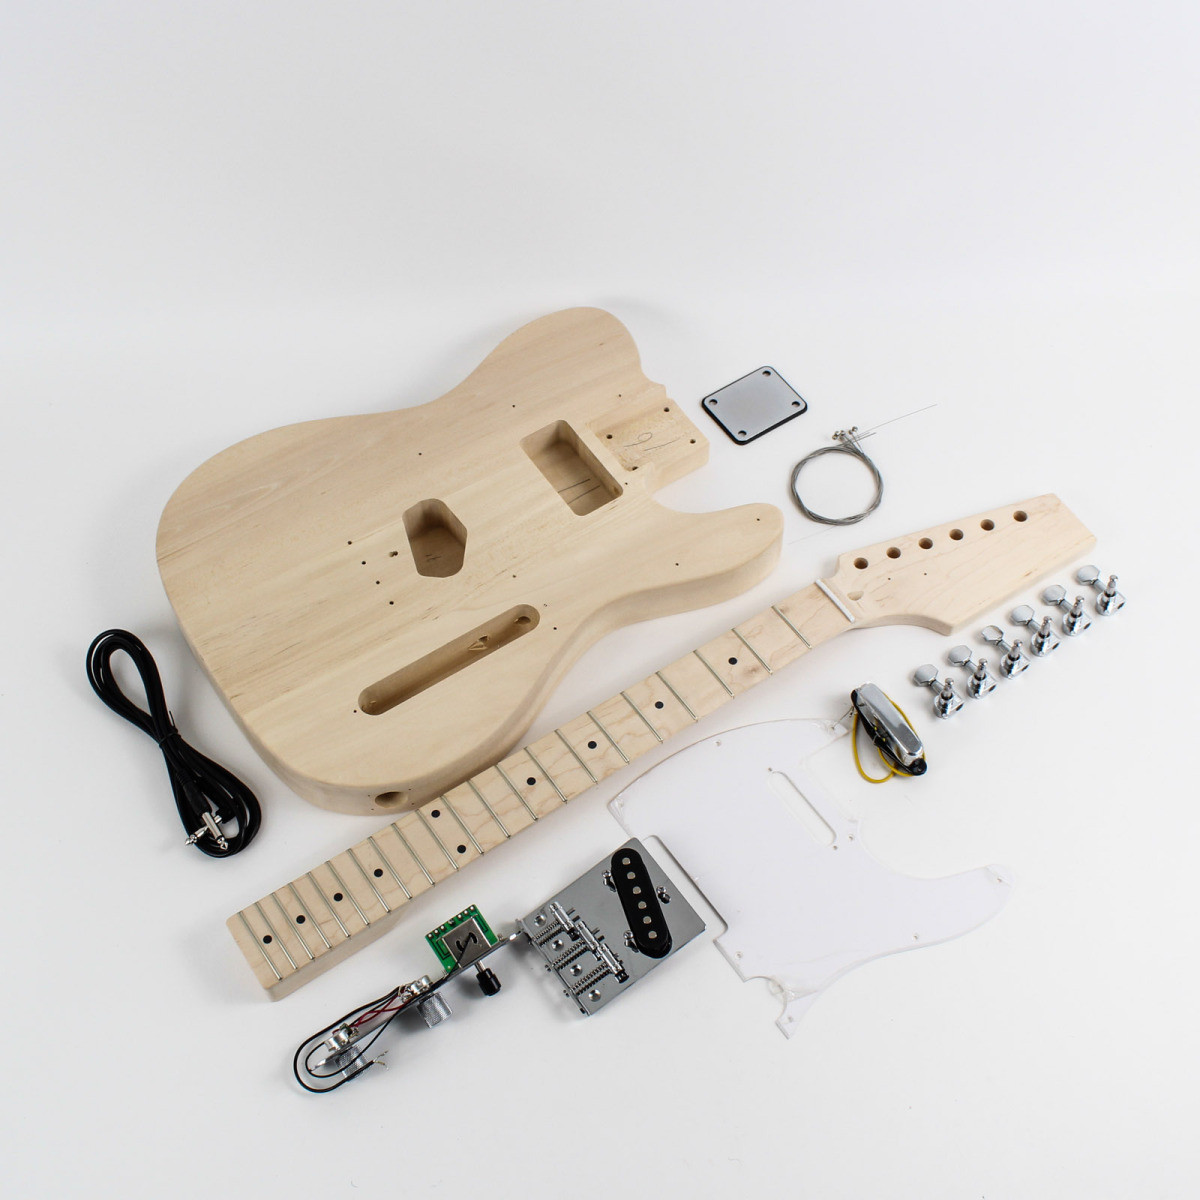 Best ideas about Cheap DIY Guitar Kits . Save or Pin Telecaster Style Guitar Kit DIY Guitars Now.